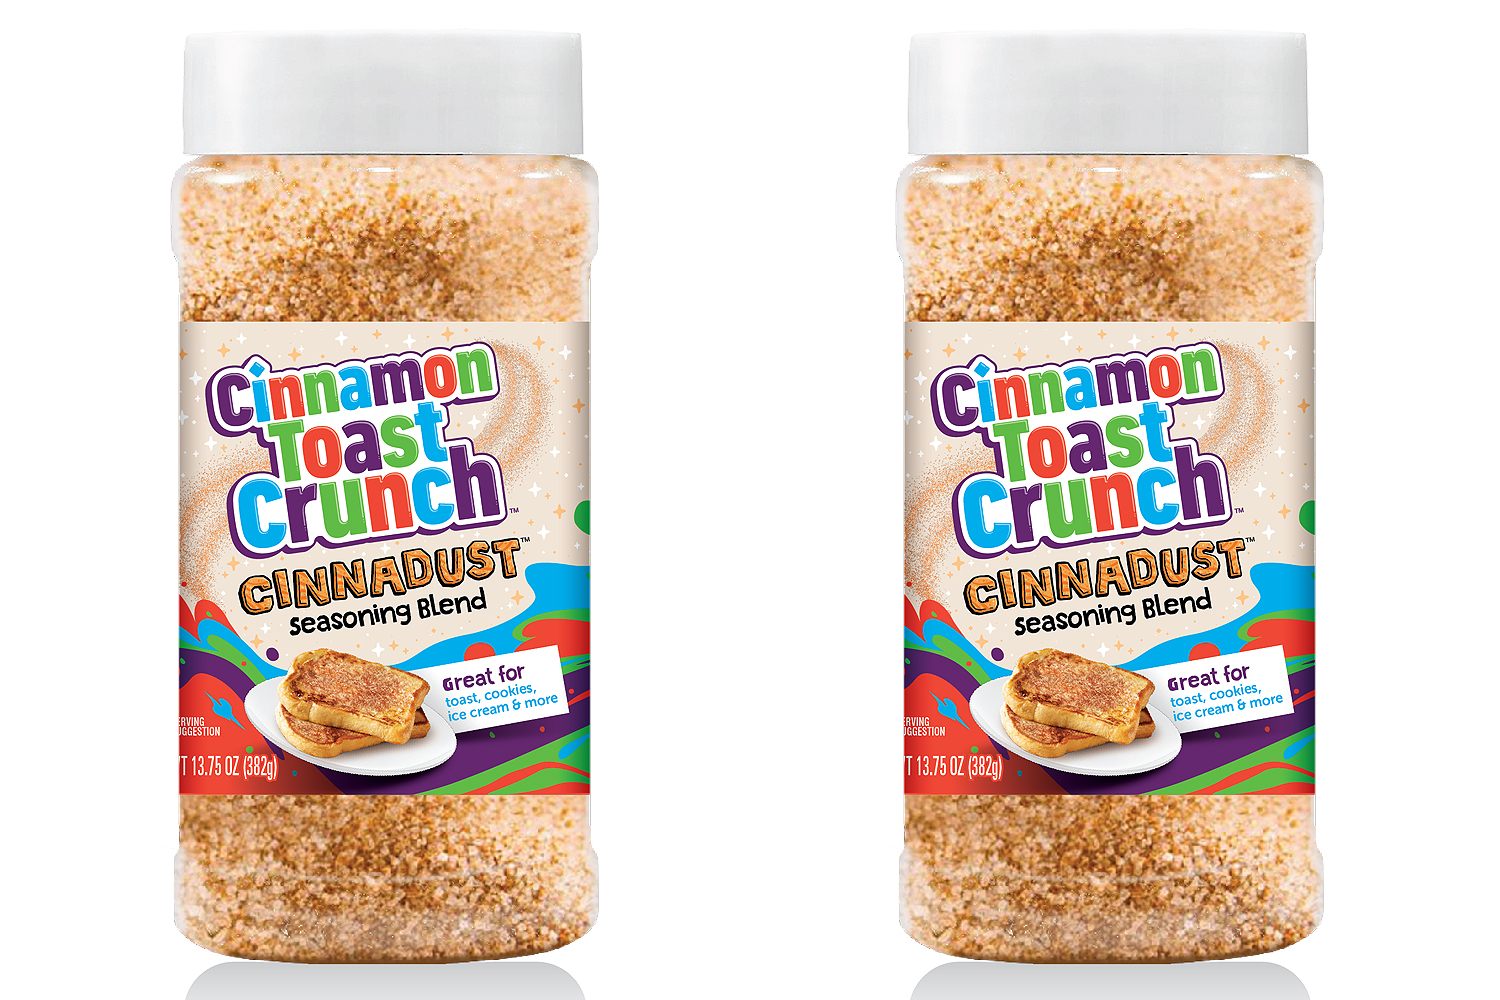 Cinnamon Toast Crunch dust